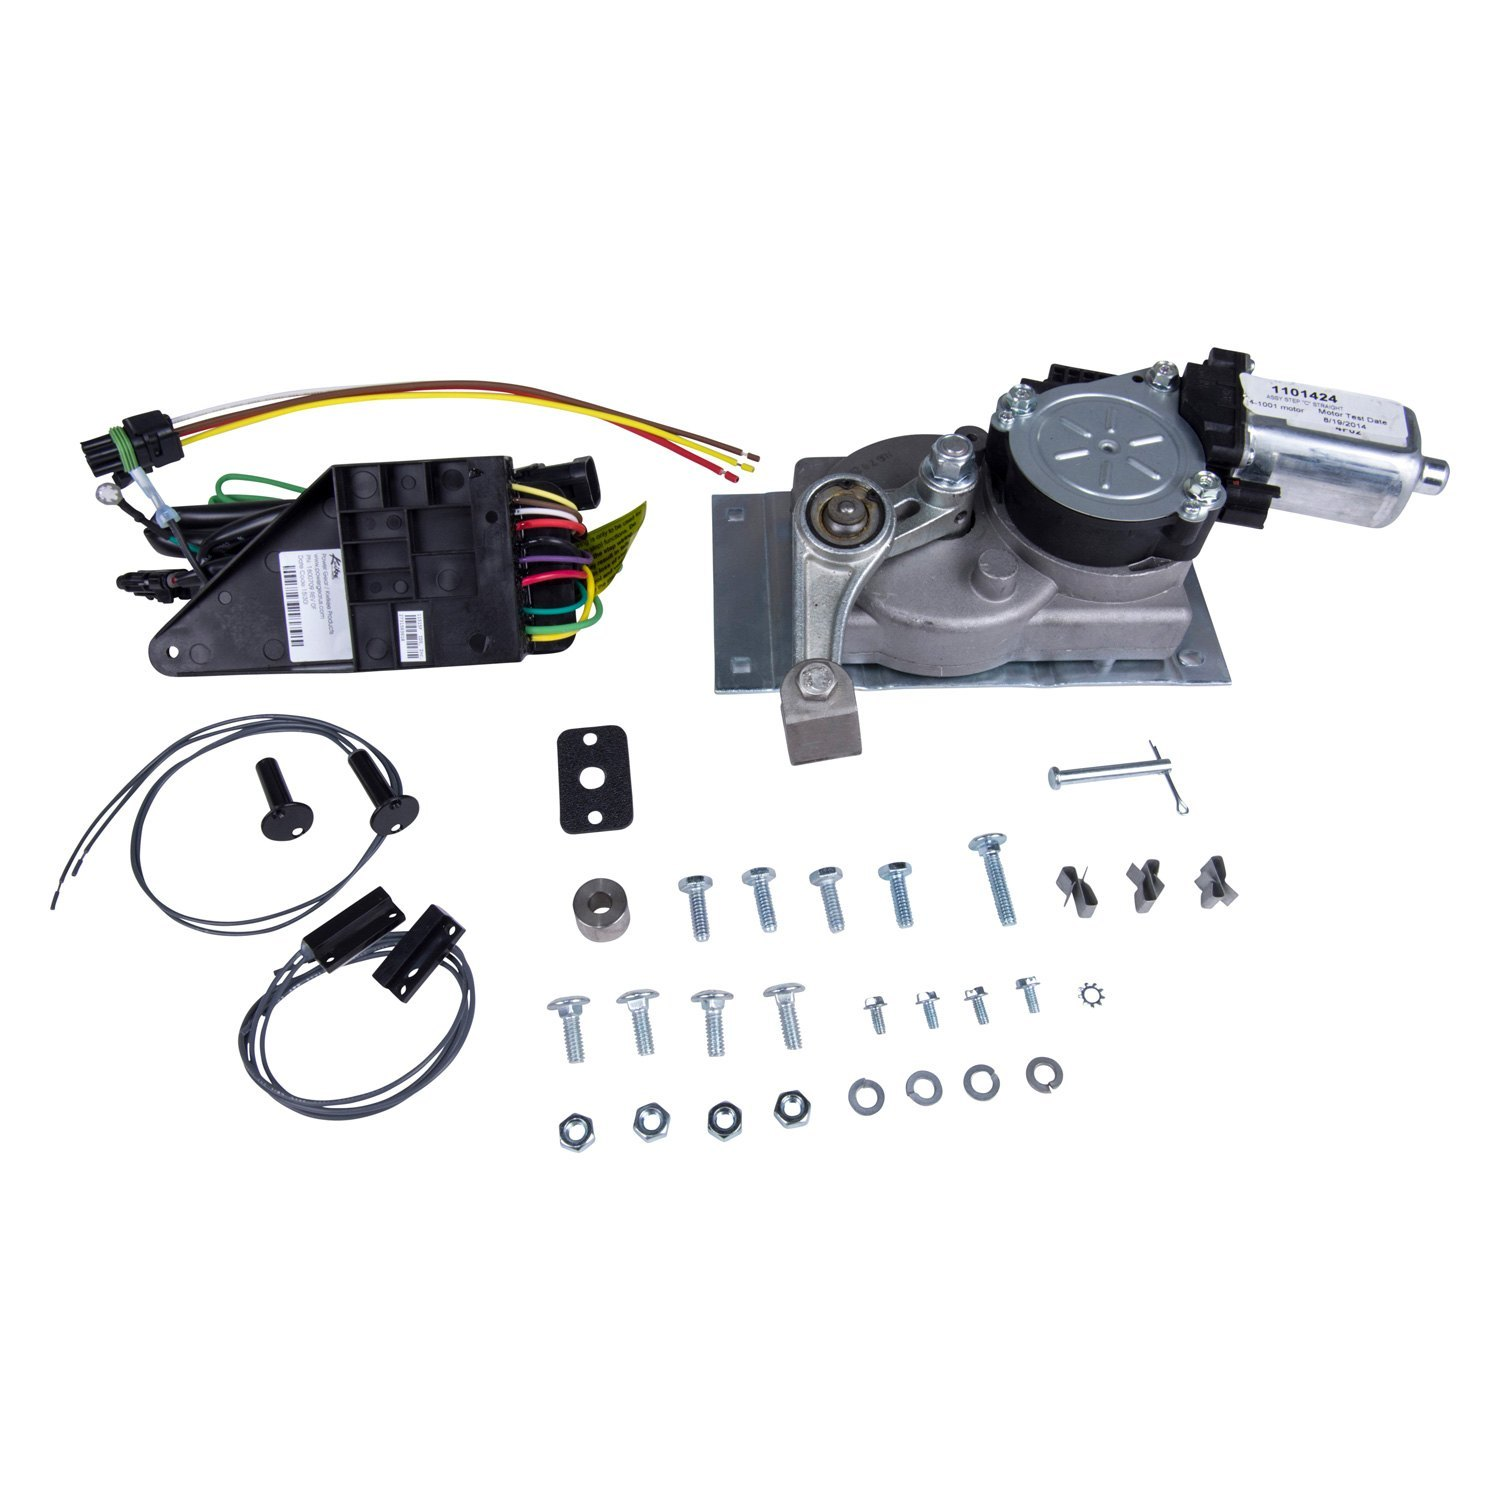 379801 kwikee� 379801 26 series step repair kit kwikee level best wiring diagram at crackthecode.co